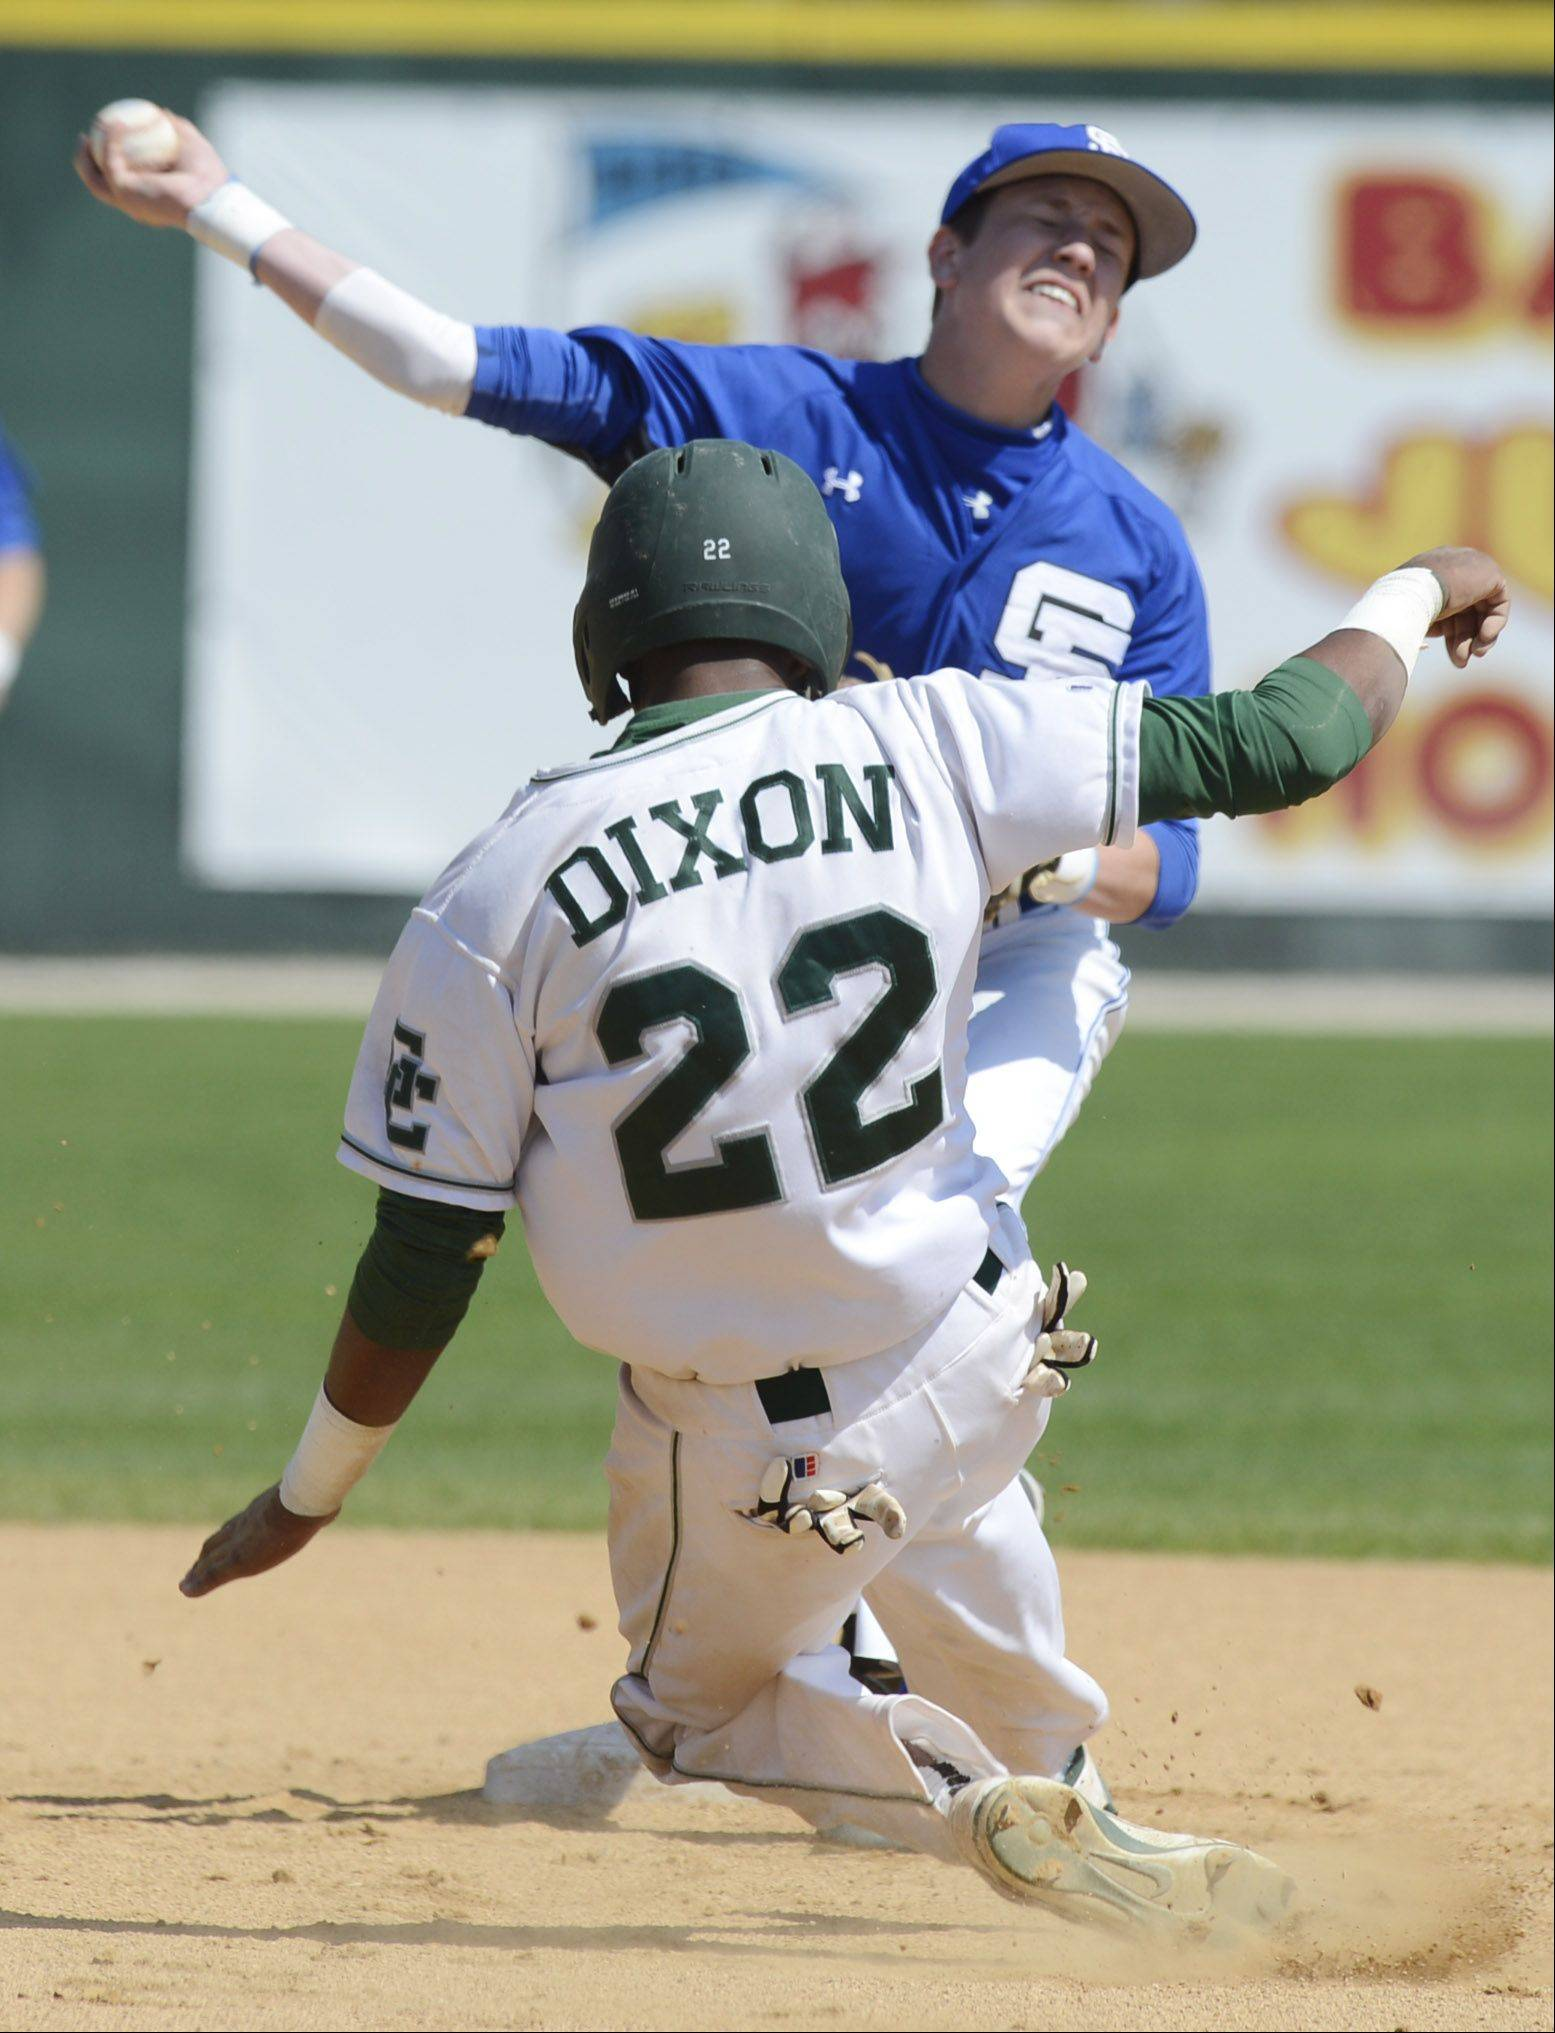 St. Francis second baseman Jack Ciombor makes the throw as Grayslake Central's Sterling Dixon slides into second on a second-inning double play during the Class 3A state baseball tournament at Silver Cross Field in Joliet on Friday.